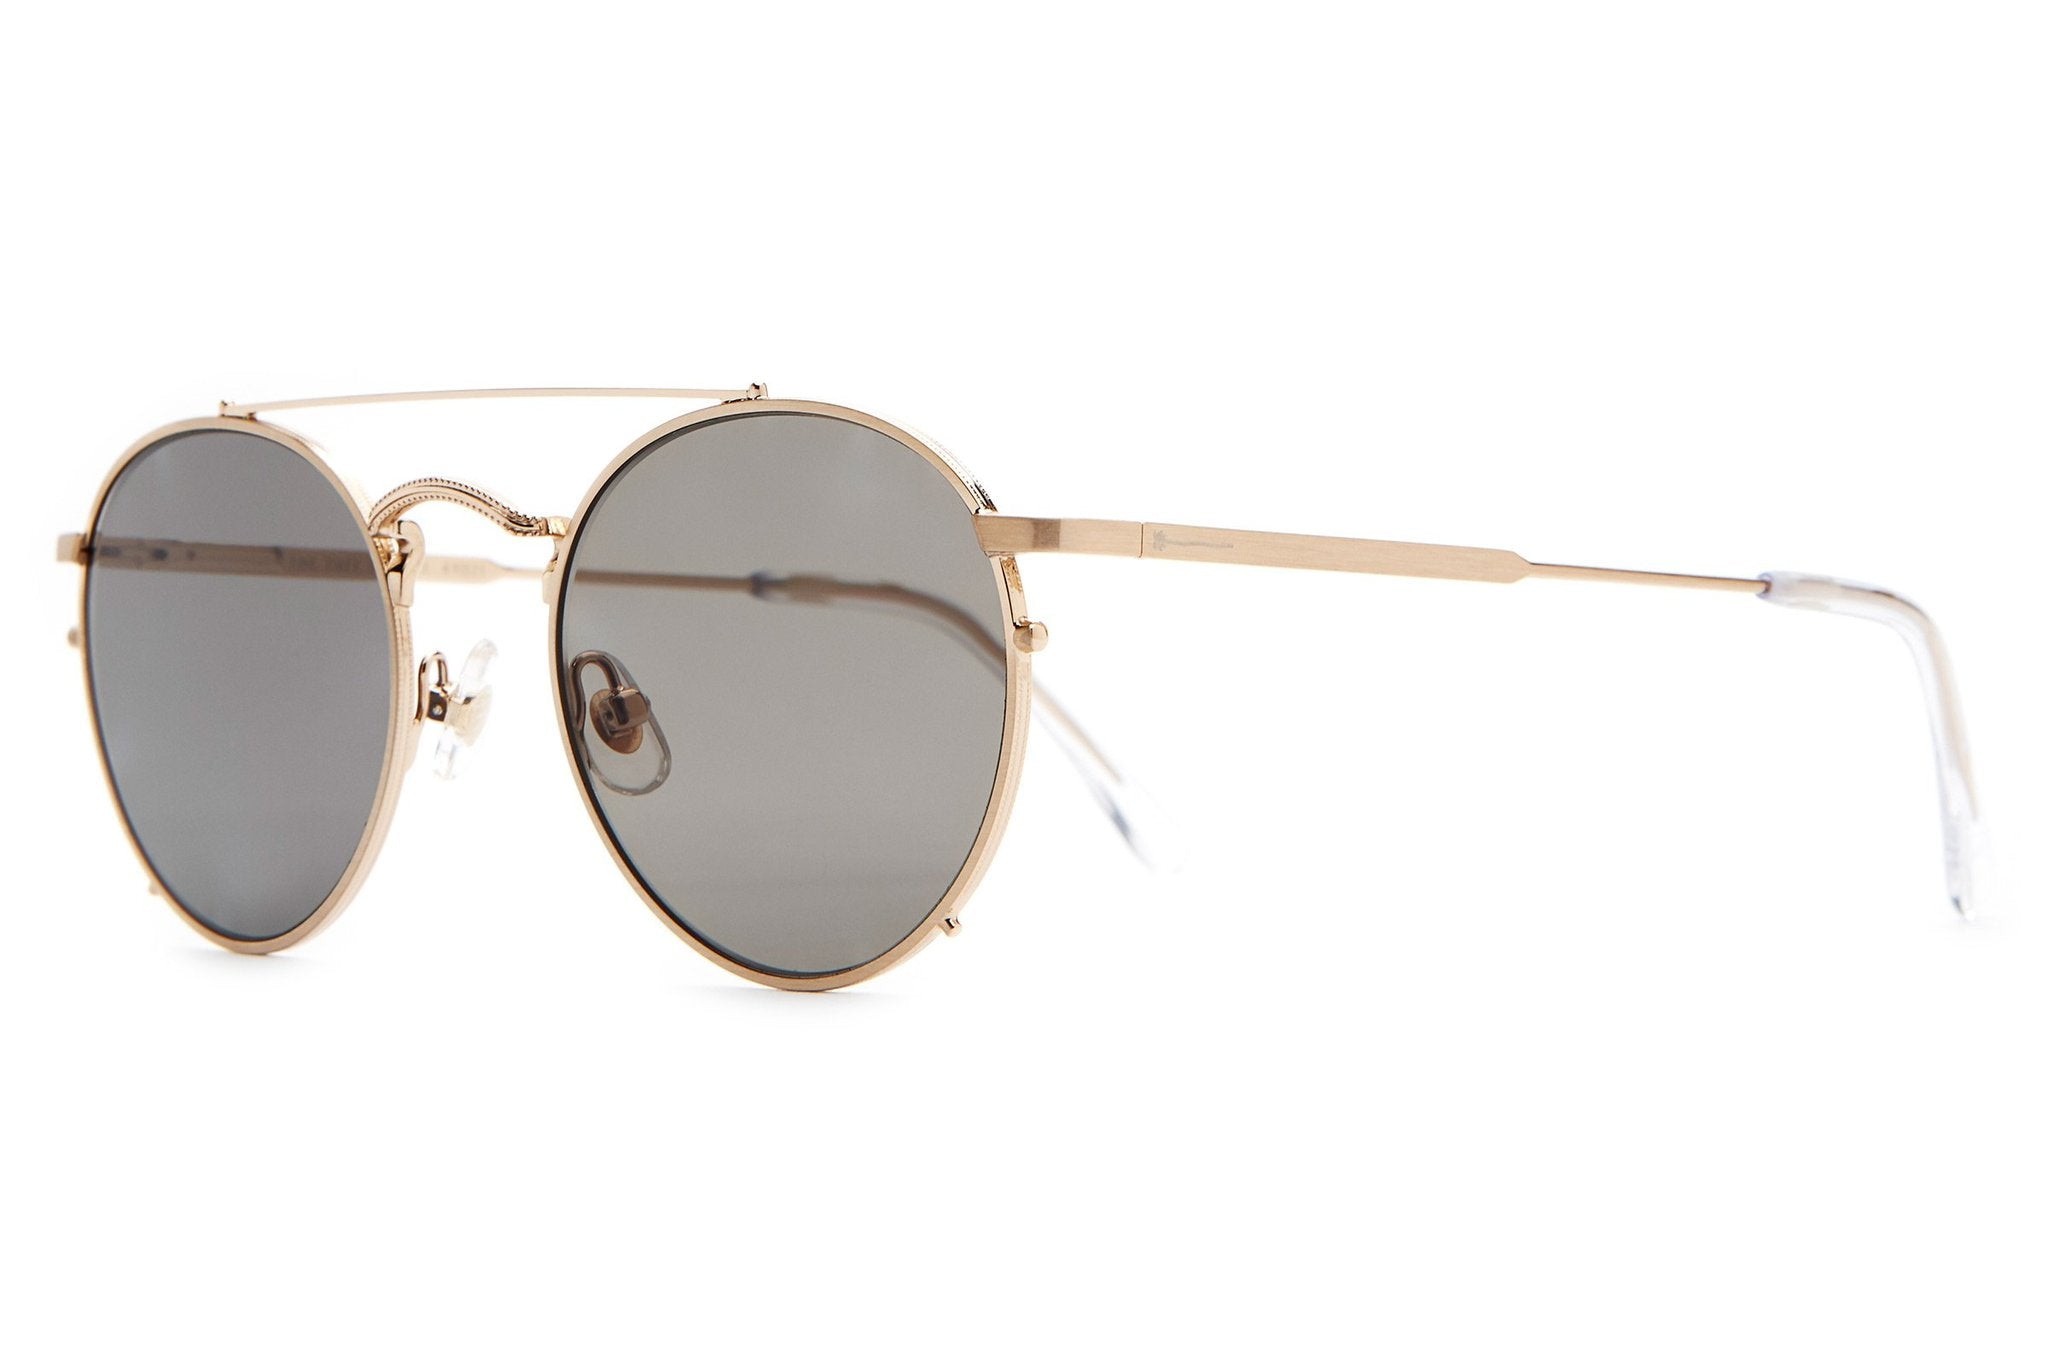 THE TUFF SAFARI / BRUSHED GOLD & GREY POLARISED LENS